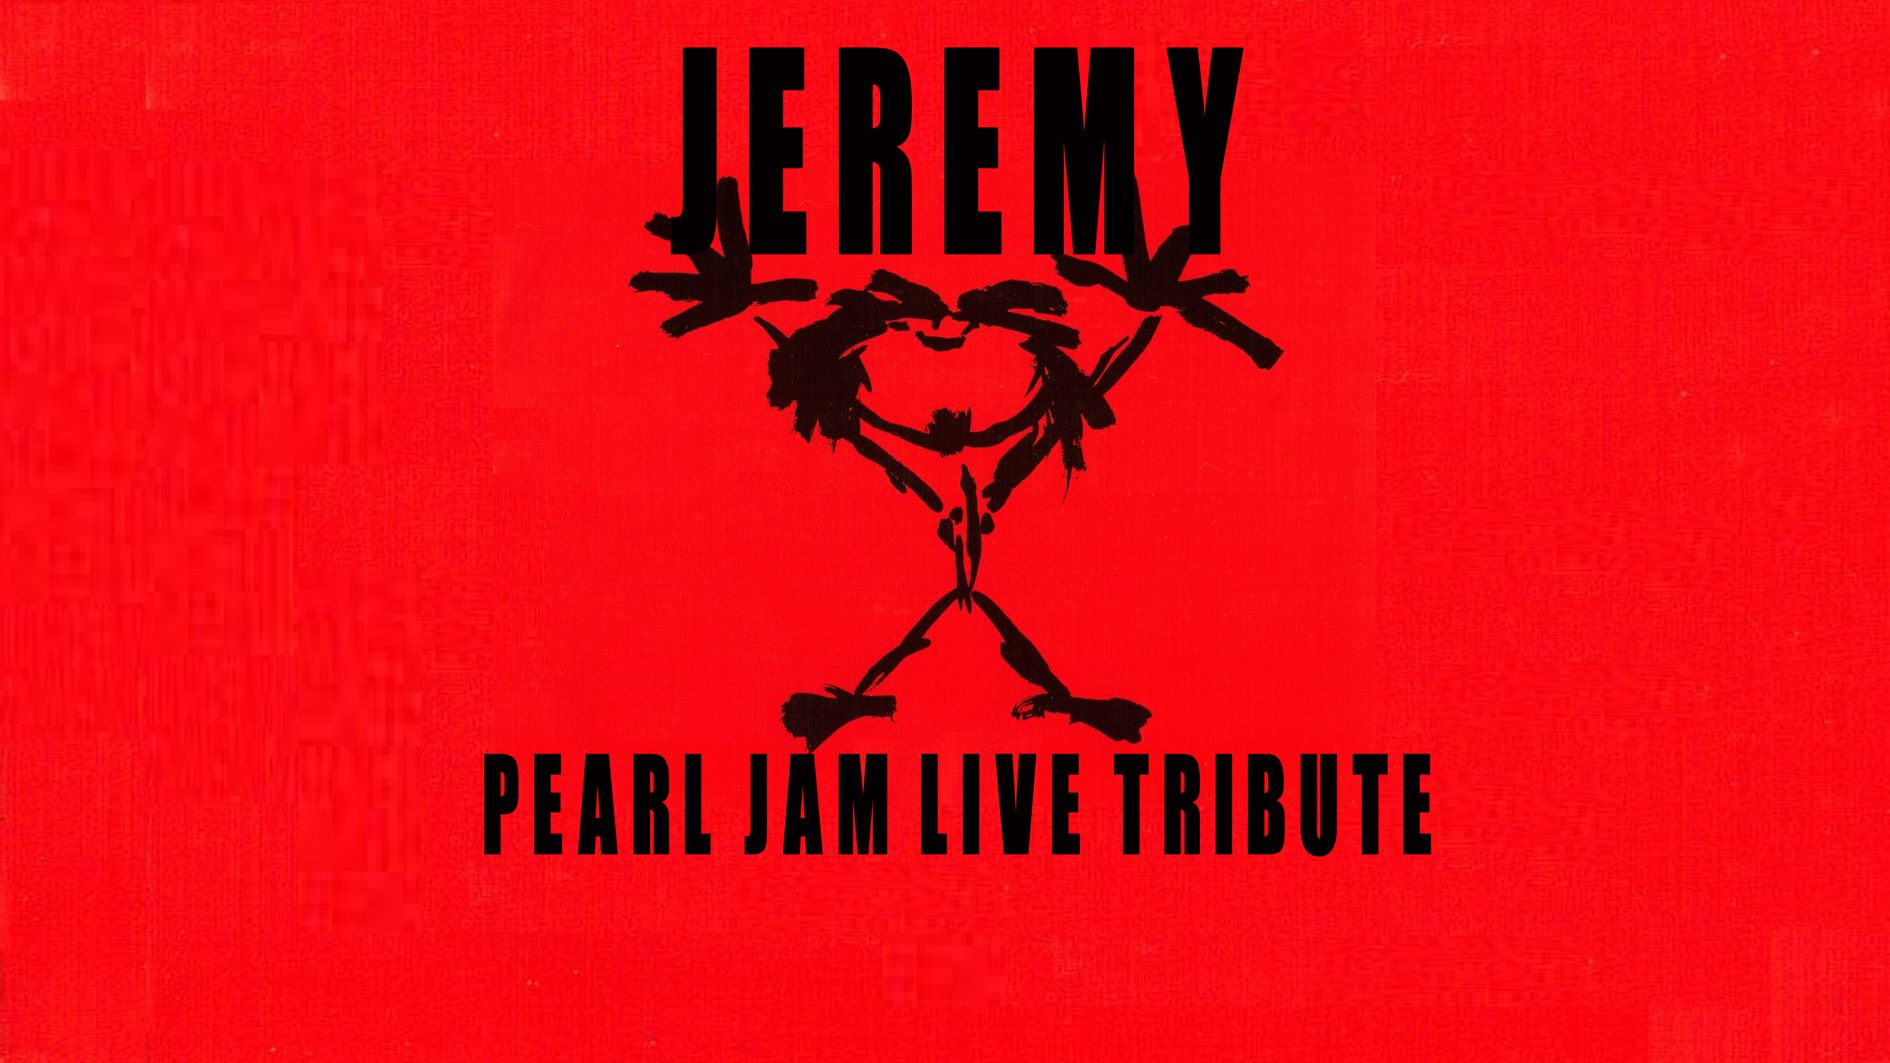 18 04 12 Jeremy Pearl Jam Live Tribute Negasonic Zaterdag 14 april 2018